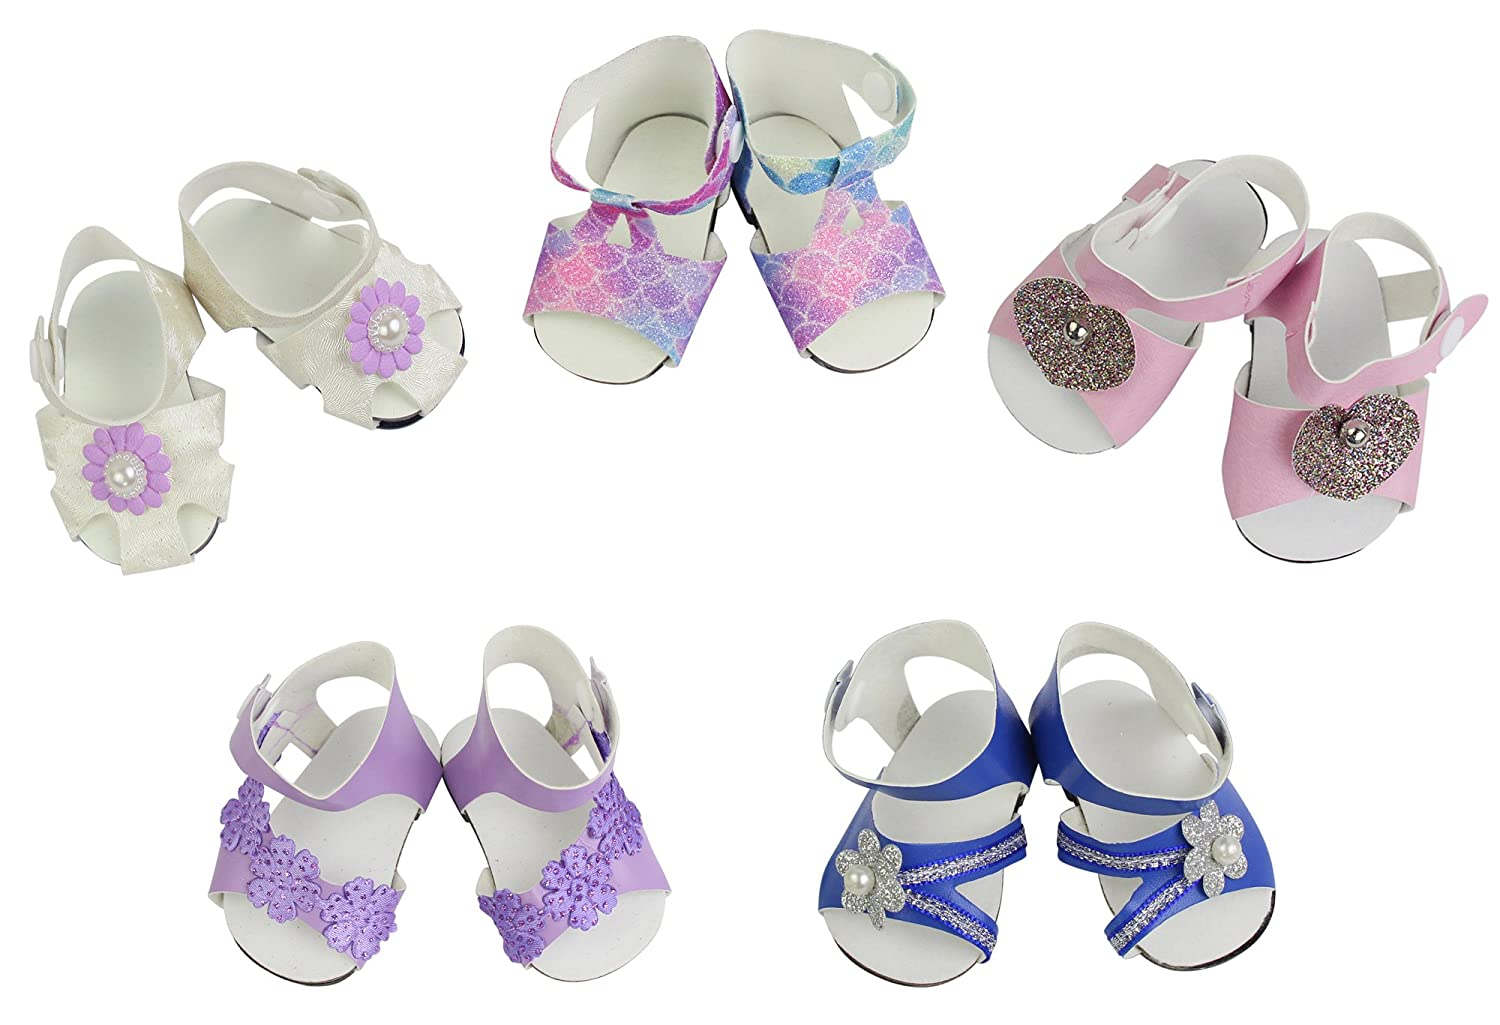 ZITA ELEMENT 5 Pairs of Shoes for American 18 Inch Girl Doll Accessories 5 Pairs Handmade Fashion Sandals for 16-18 Baby Dolls Best Premium /& Reward Gift for Girls